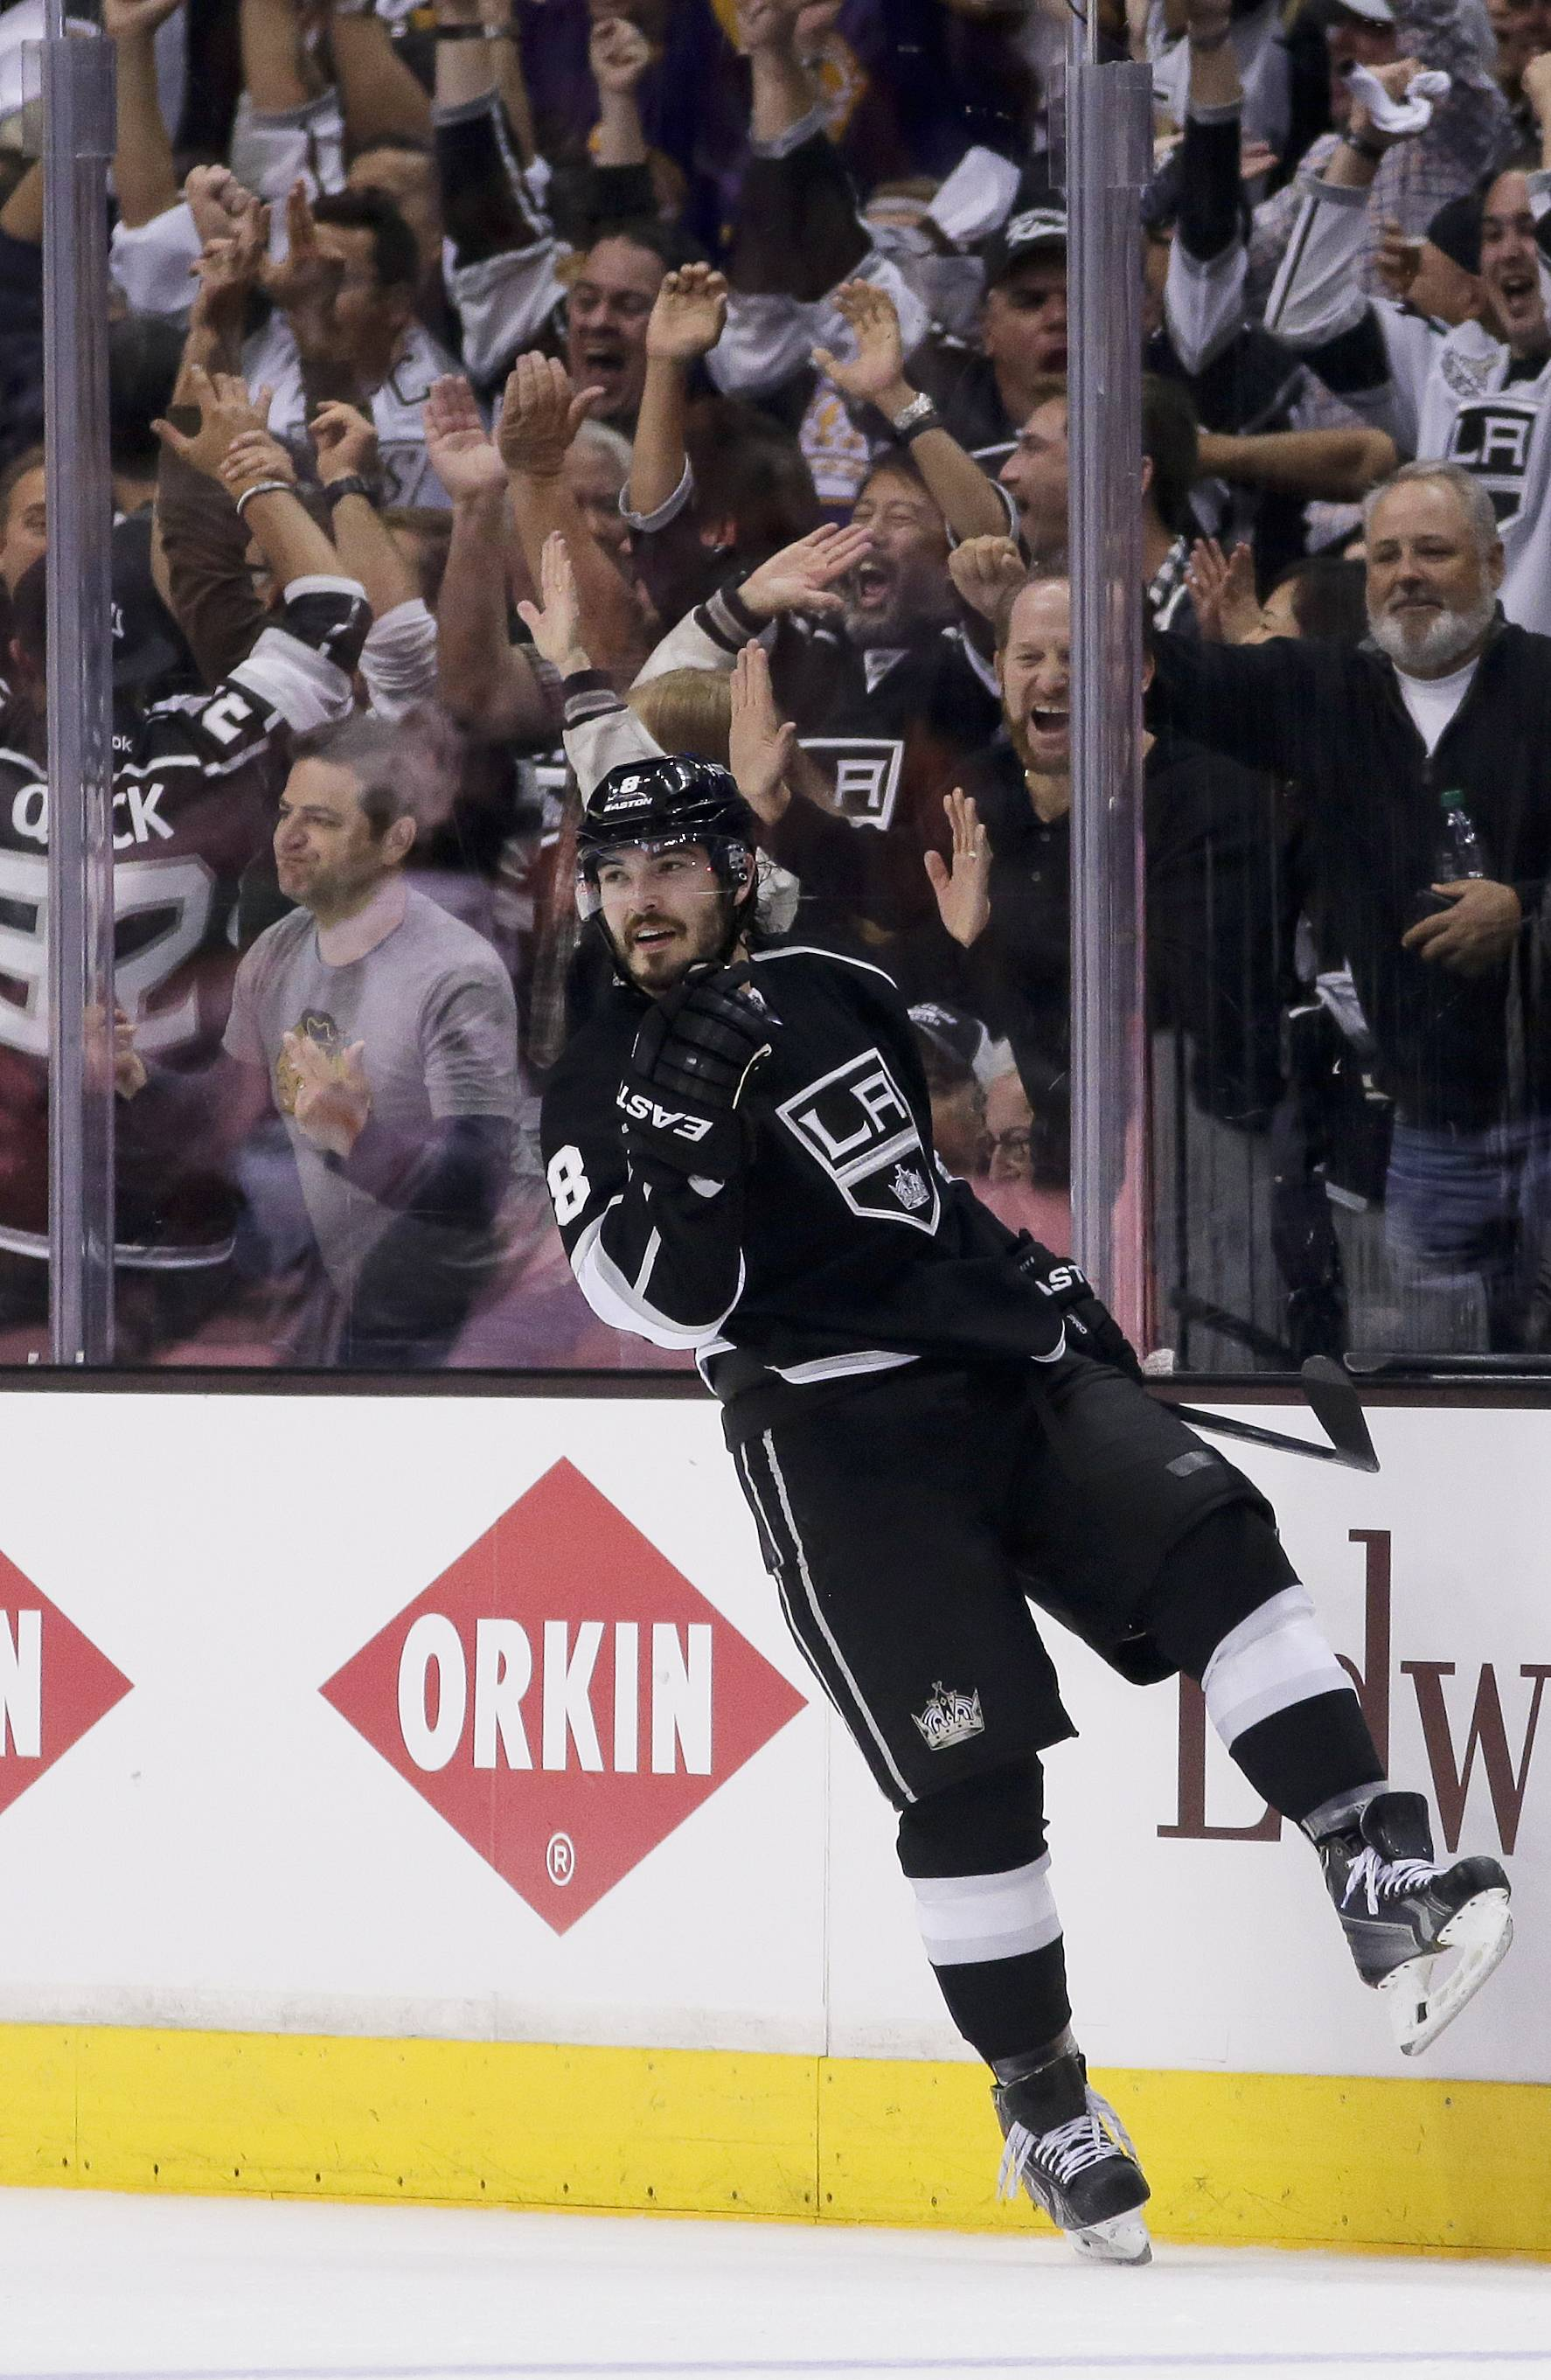 Los Angeles Kings defenseman Drew Doughty celebrates his goal against the Chicago Blackhawks during the third period of Game 3 of the Western Conference finals of the NHL hockey Stanley Cup playoffs in Los Angeles, Saturday, May 24, 2014.